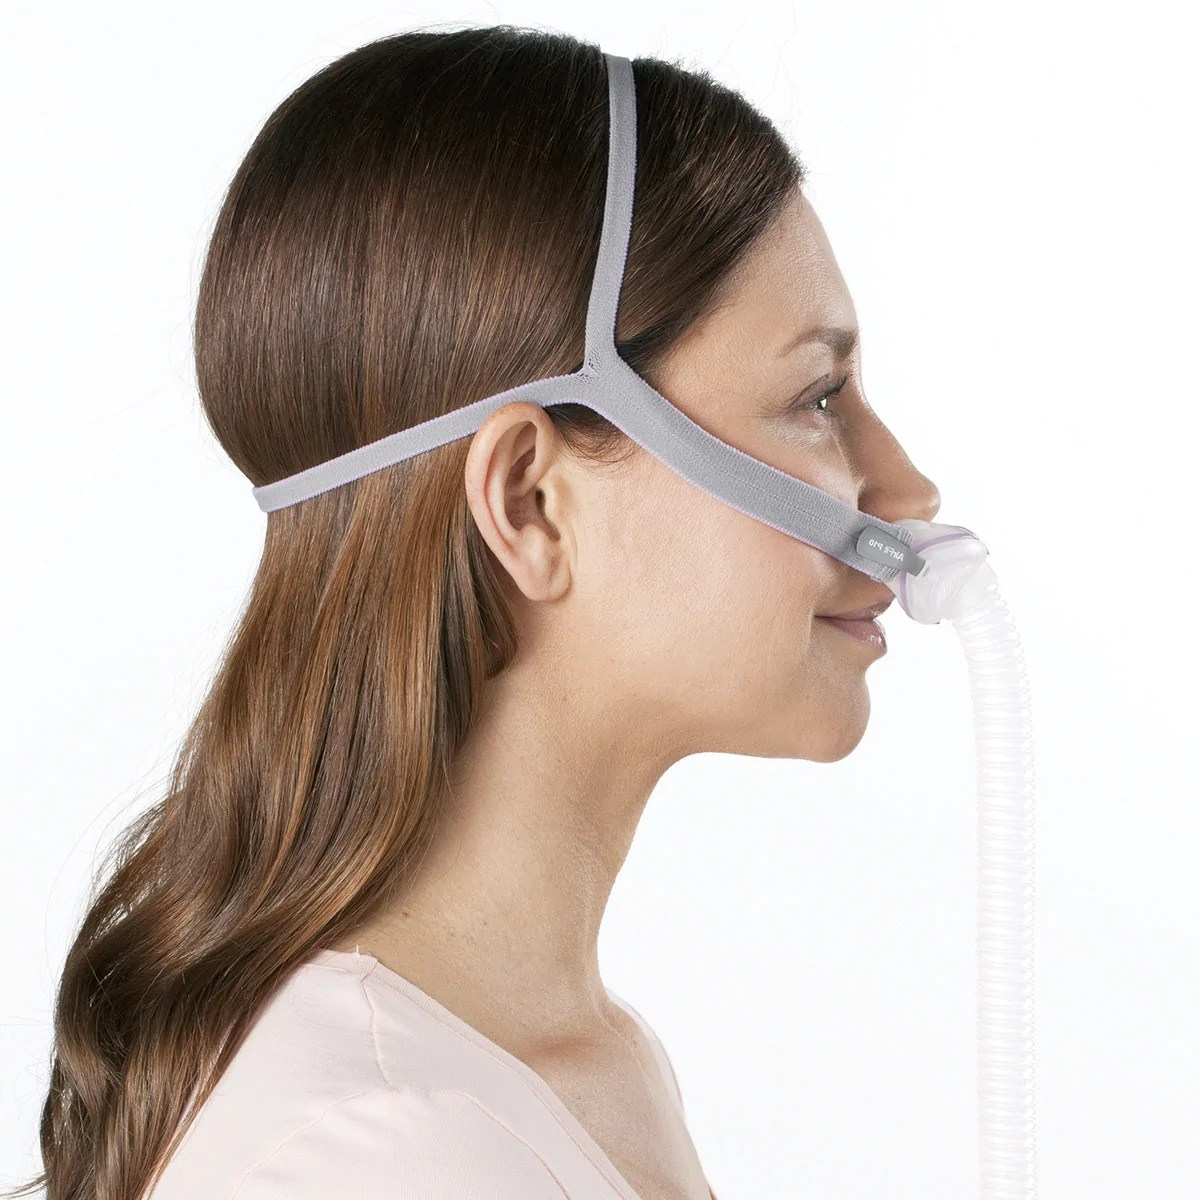 resmed airfit p10 for her nasal pillows cpap mask with headgear